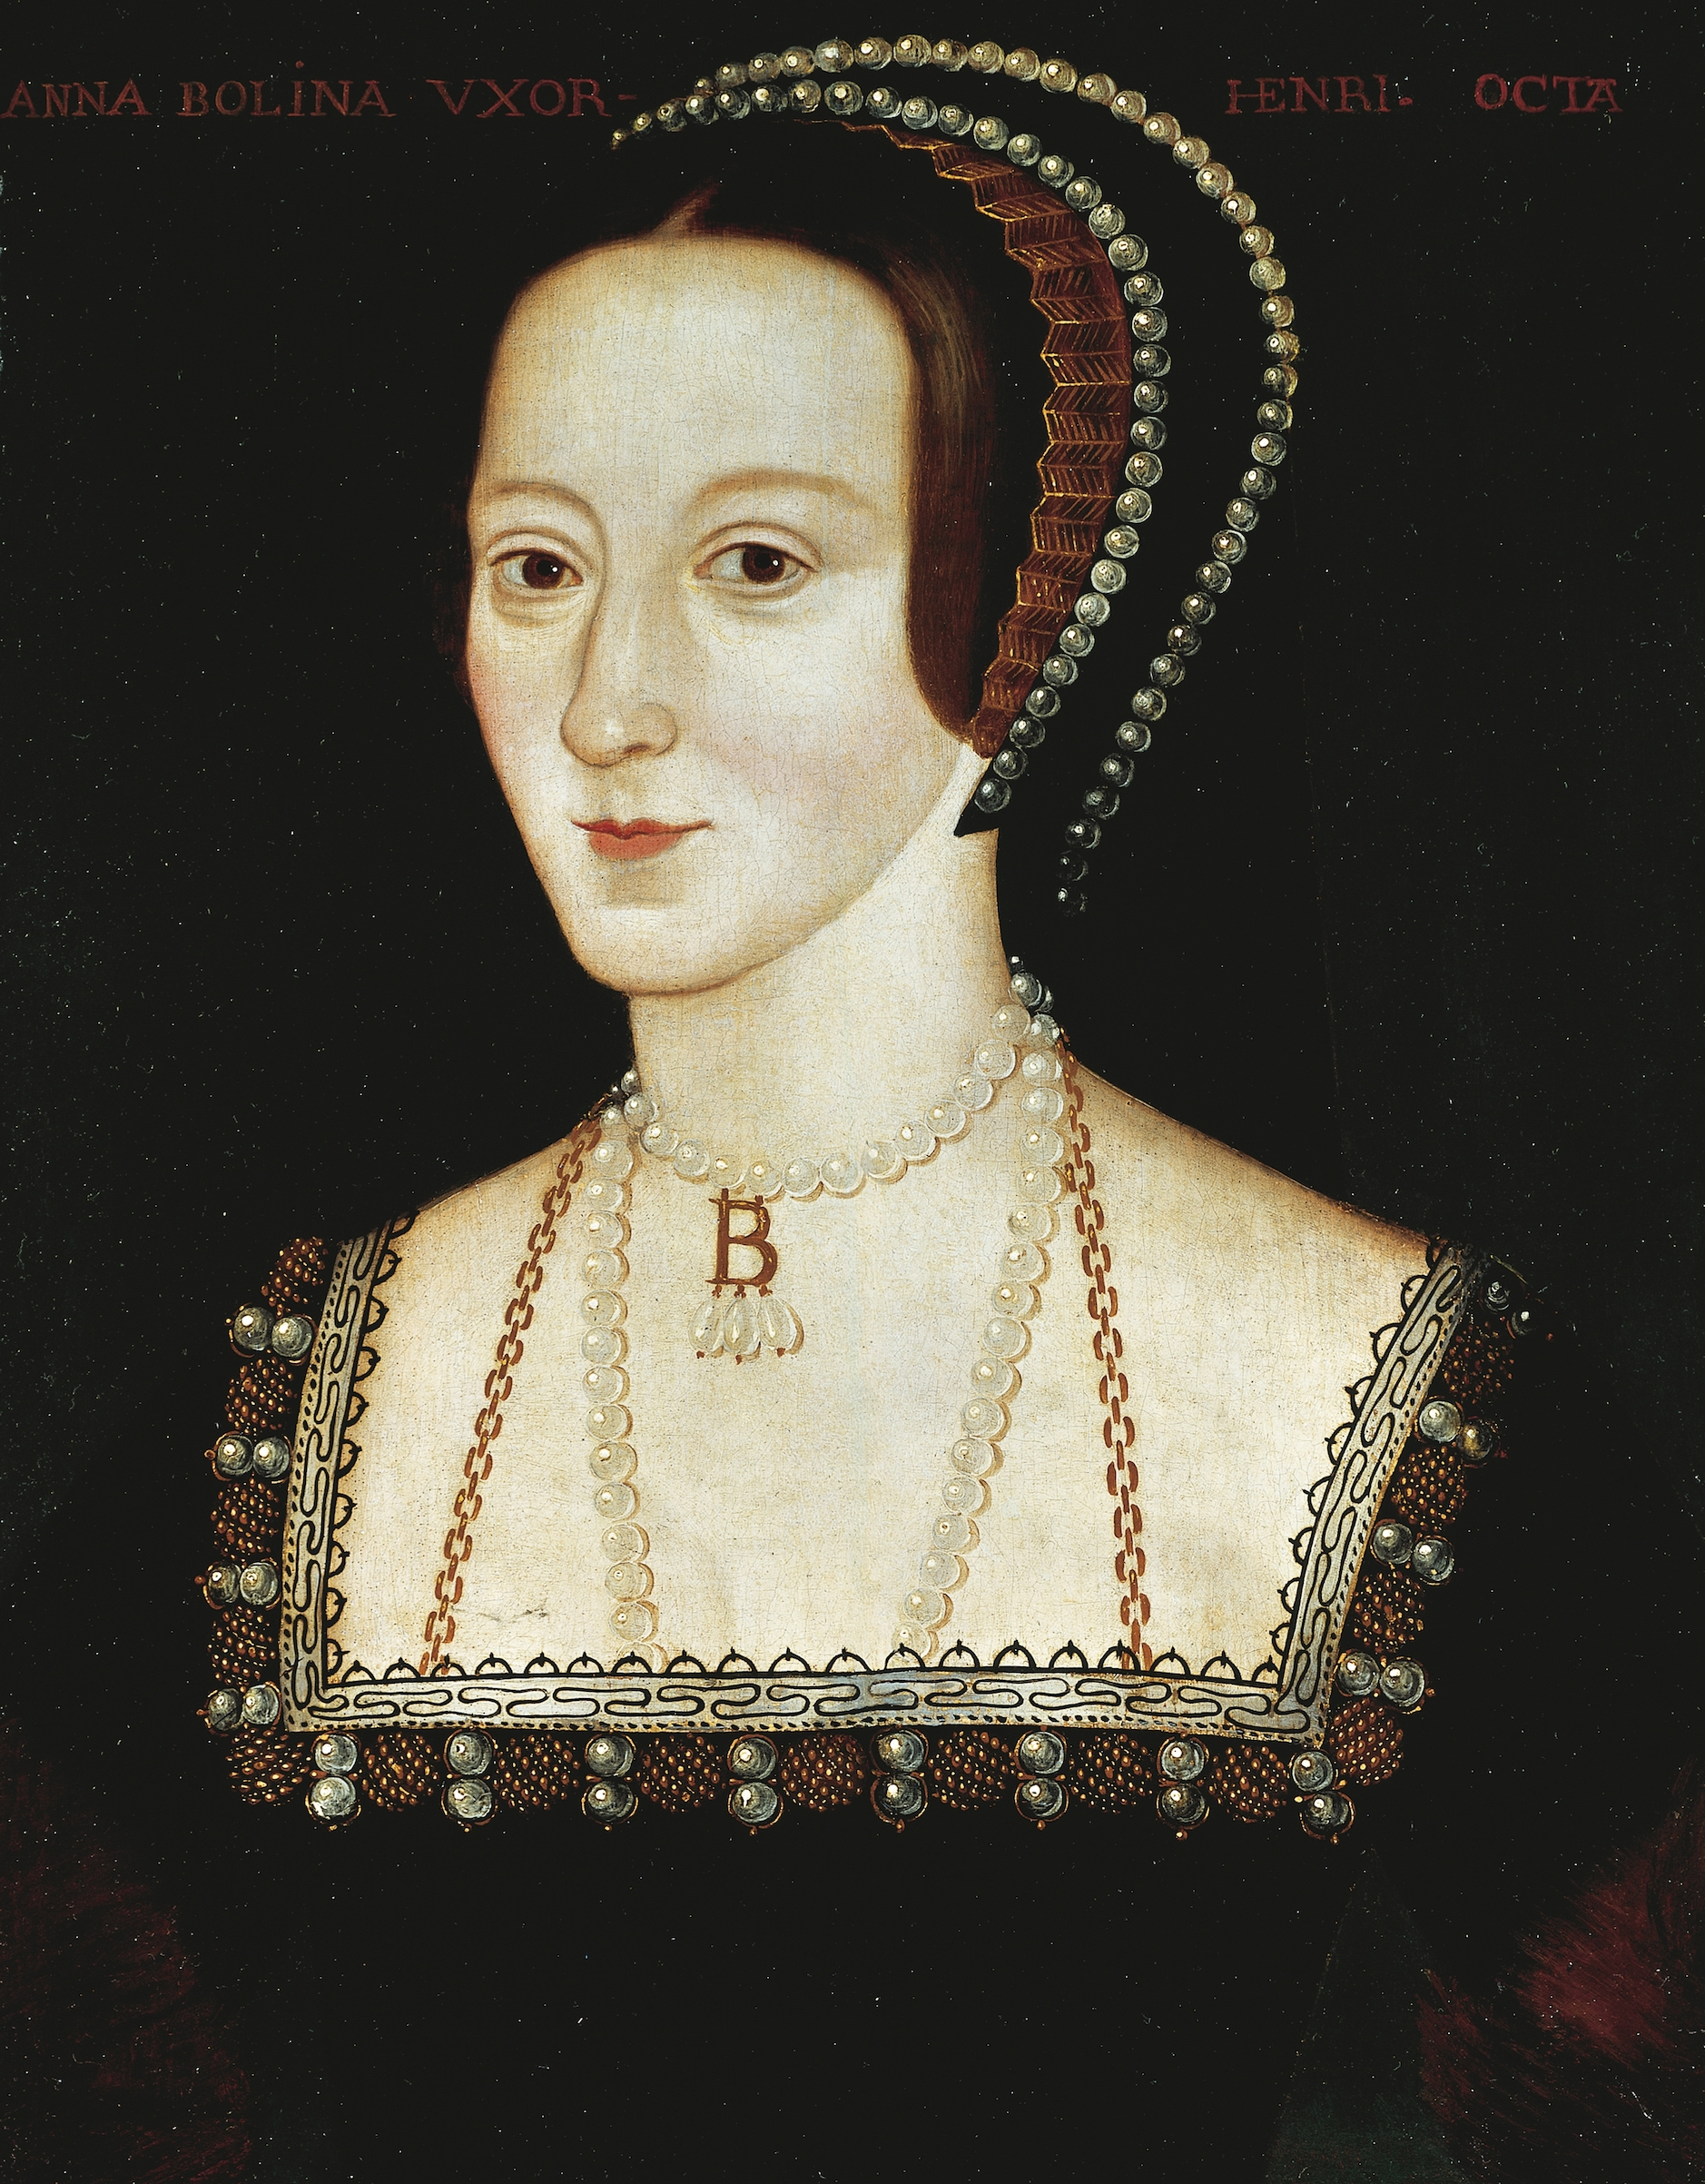 Portrait of Anne Boleyn (1507-London, 1536), Queen of England. Painting by unknown artist, oil on panel, ca 1533-1536.